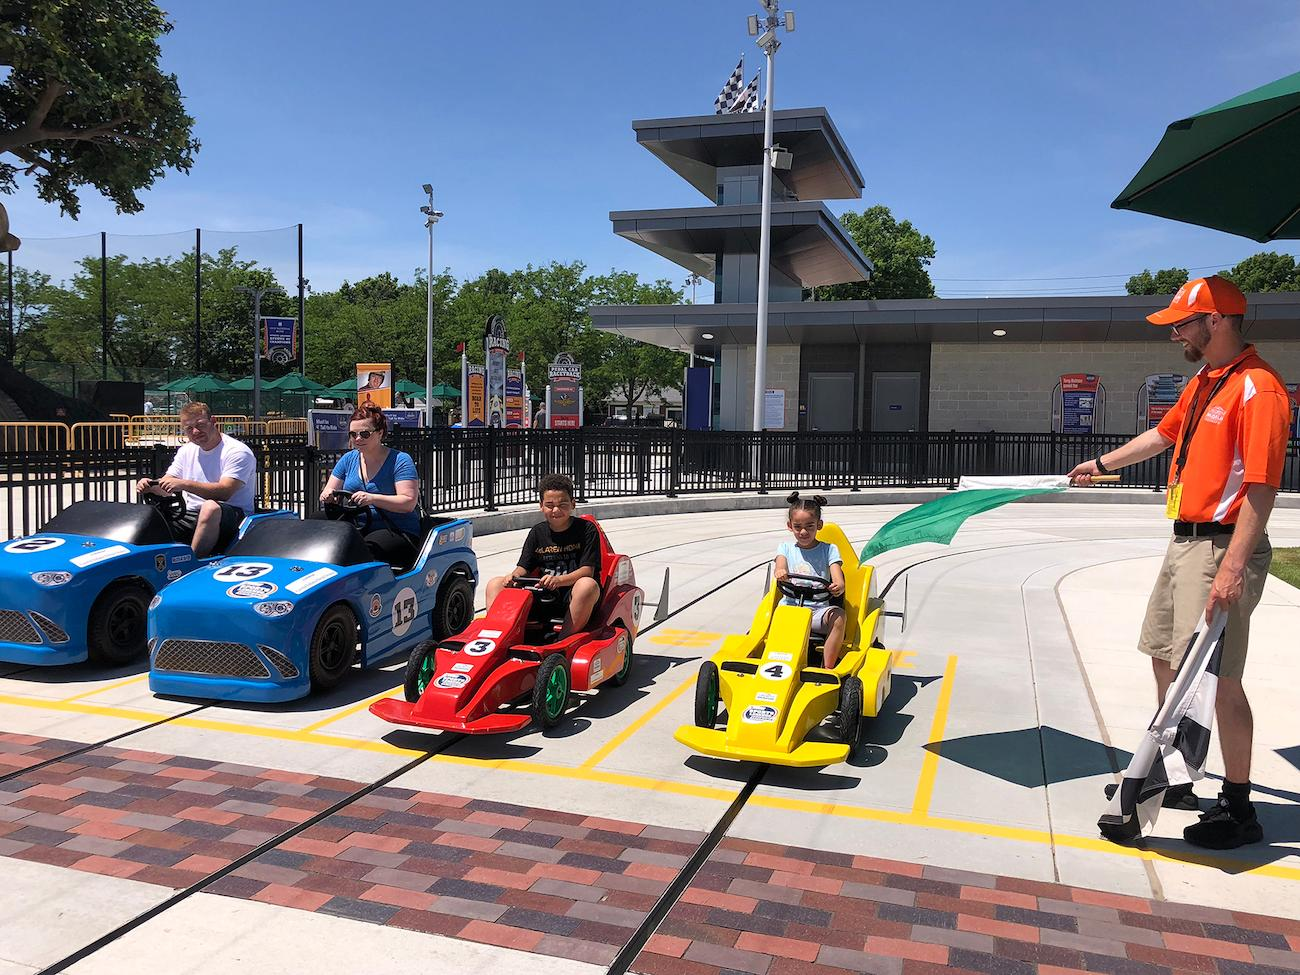 Race pedal cars in the Indianapolis Motor Speedway Pedal Car Racing Experience / Image courtesy of Children's Museum of Indianapolis // Published: 4.2.19